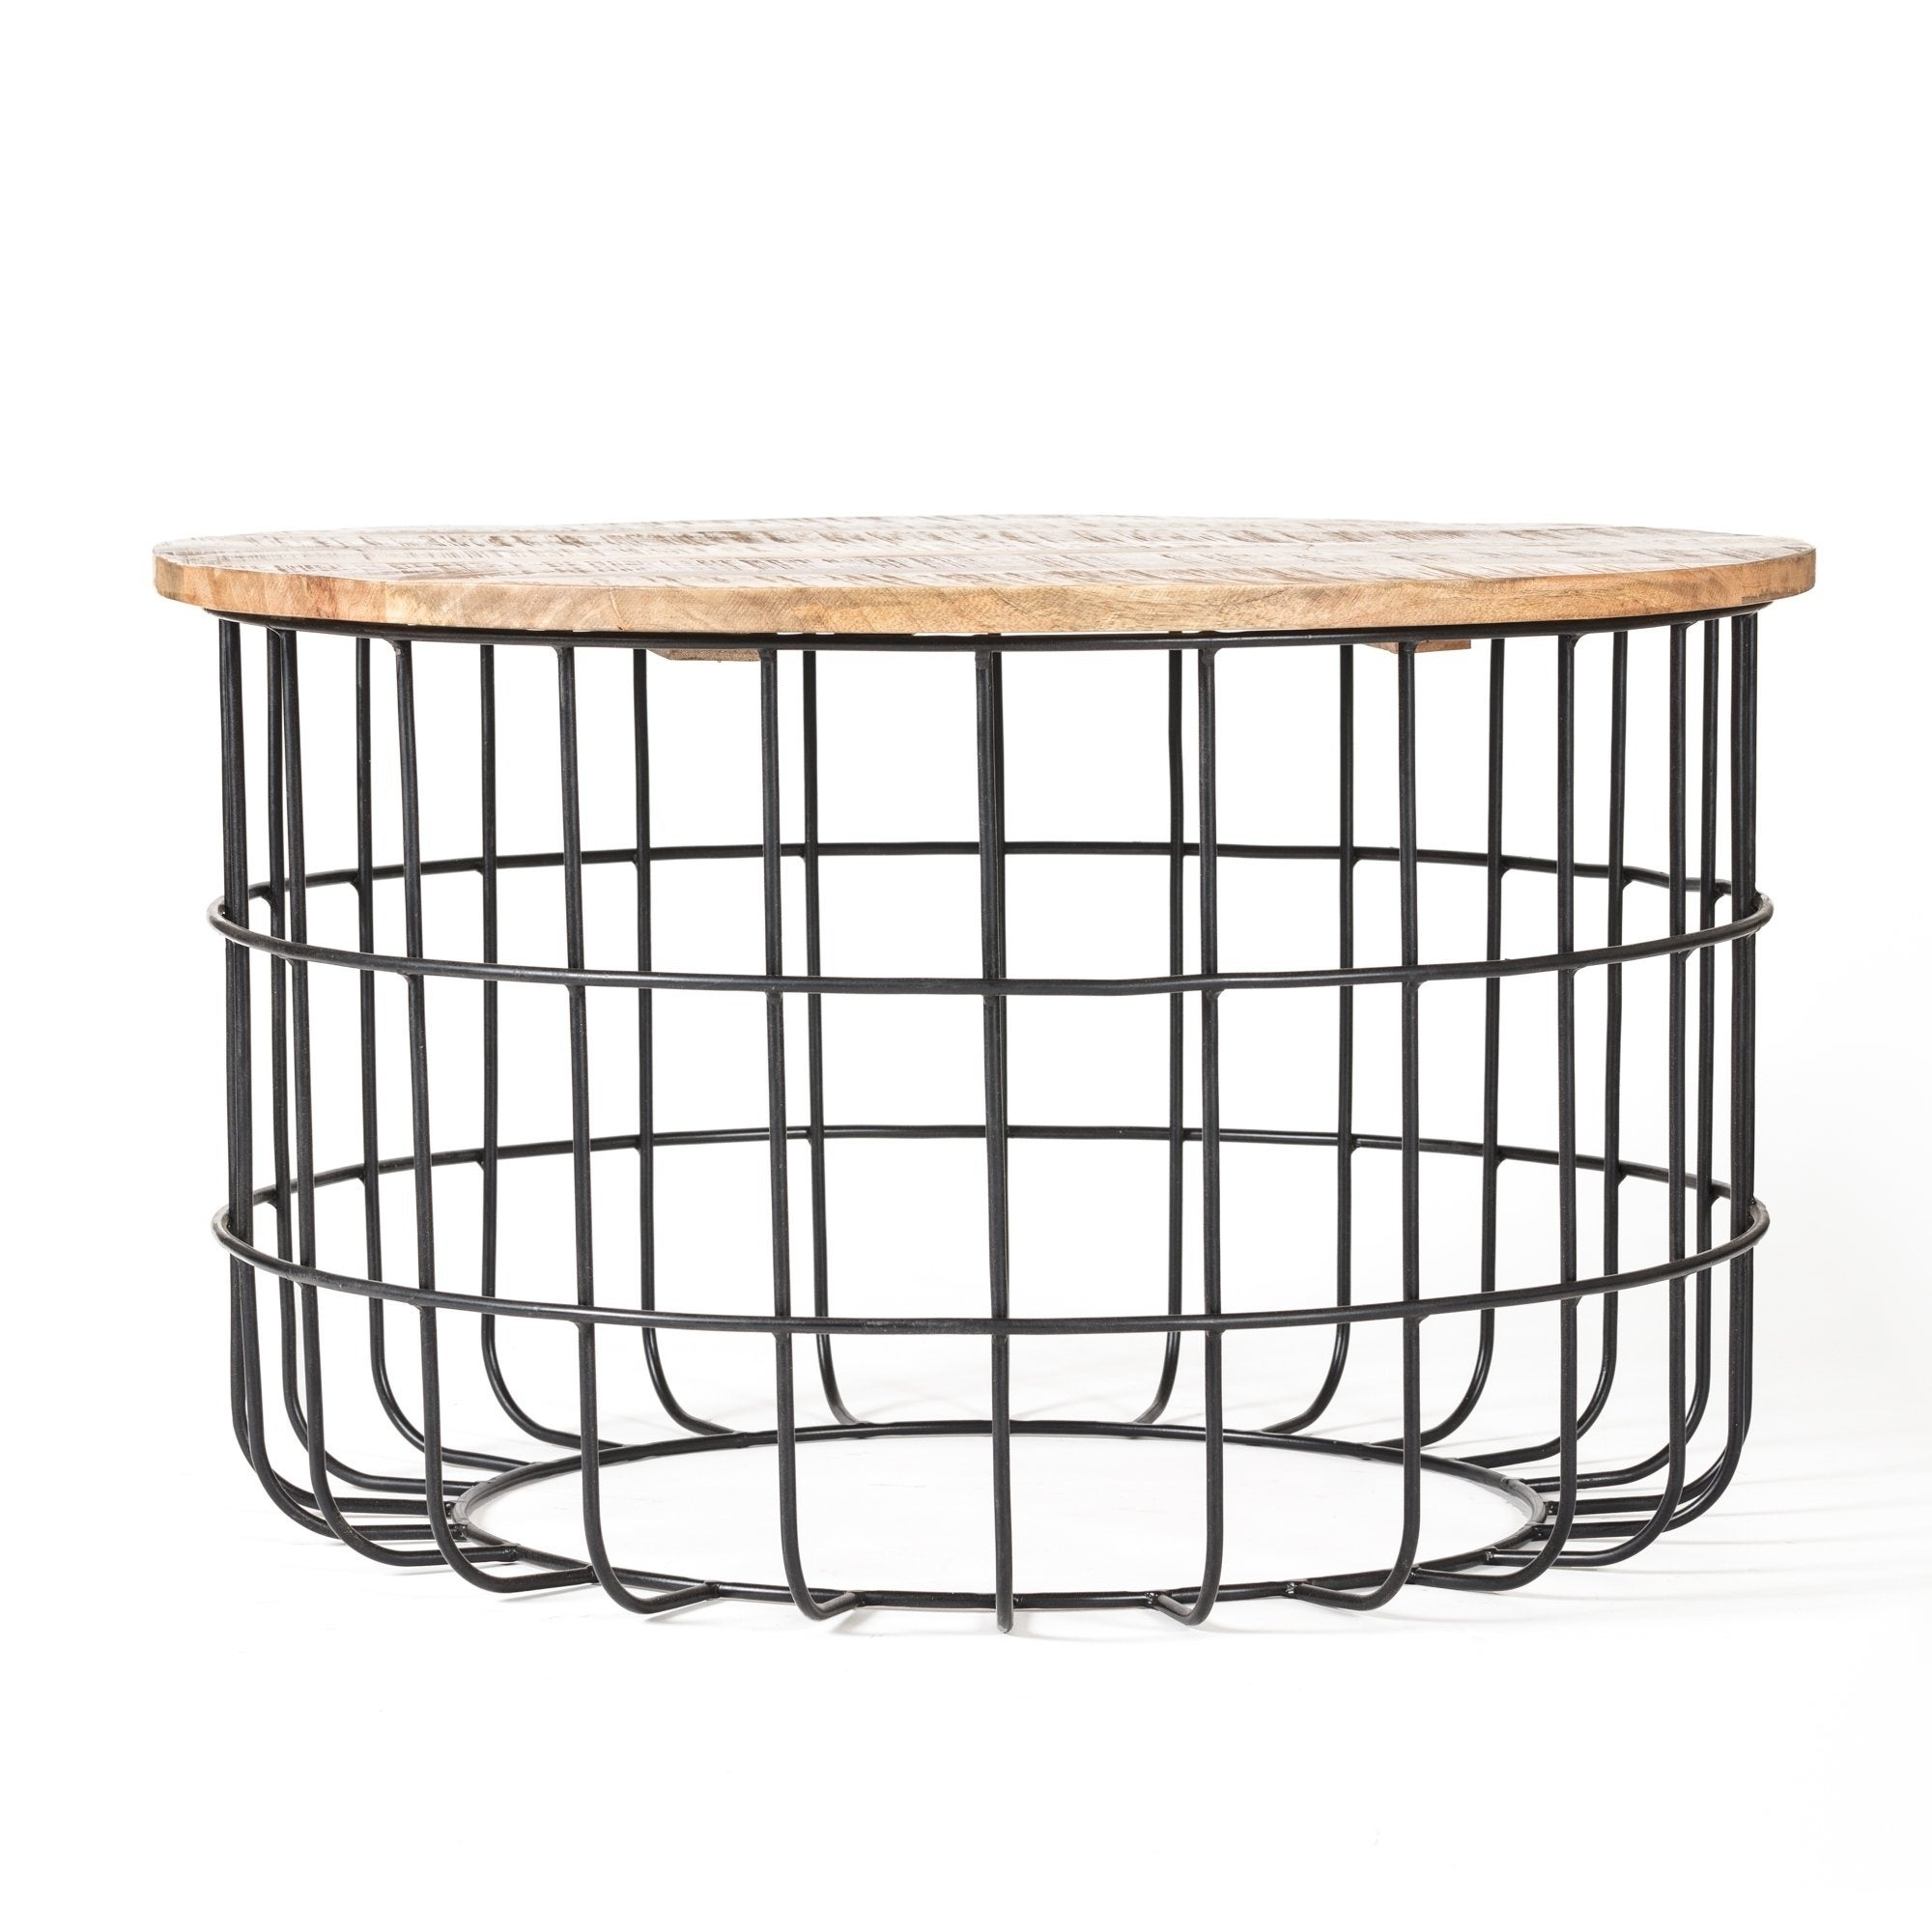 Excellent Carbon Loft Chessor Black And Natural Wood Cage Coffee Table Lamtechconsult Wood Chair Design Ideas Lamtechconsultcom